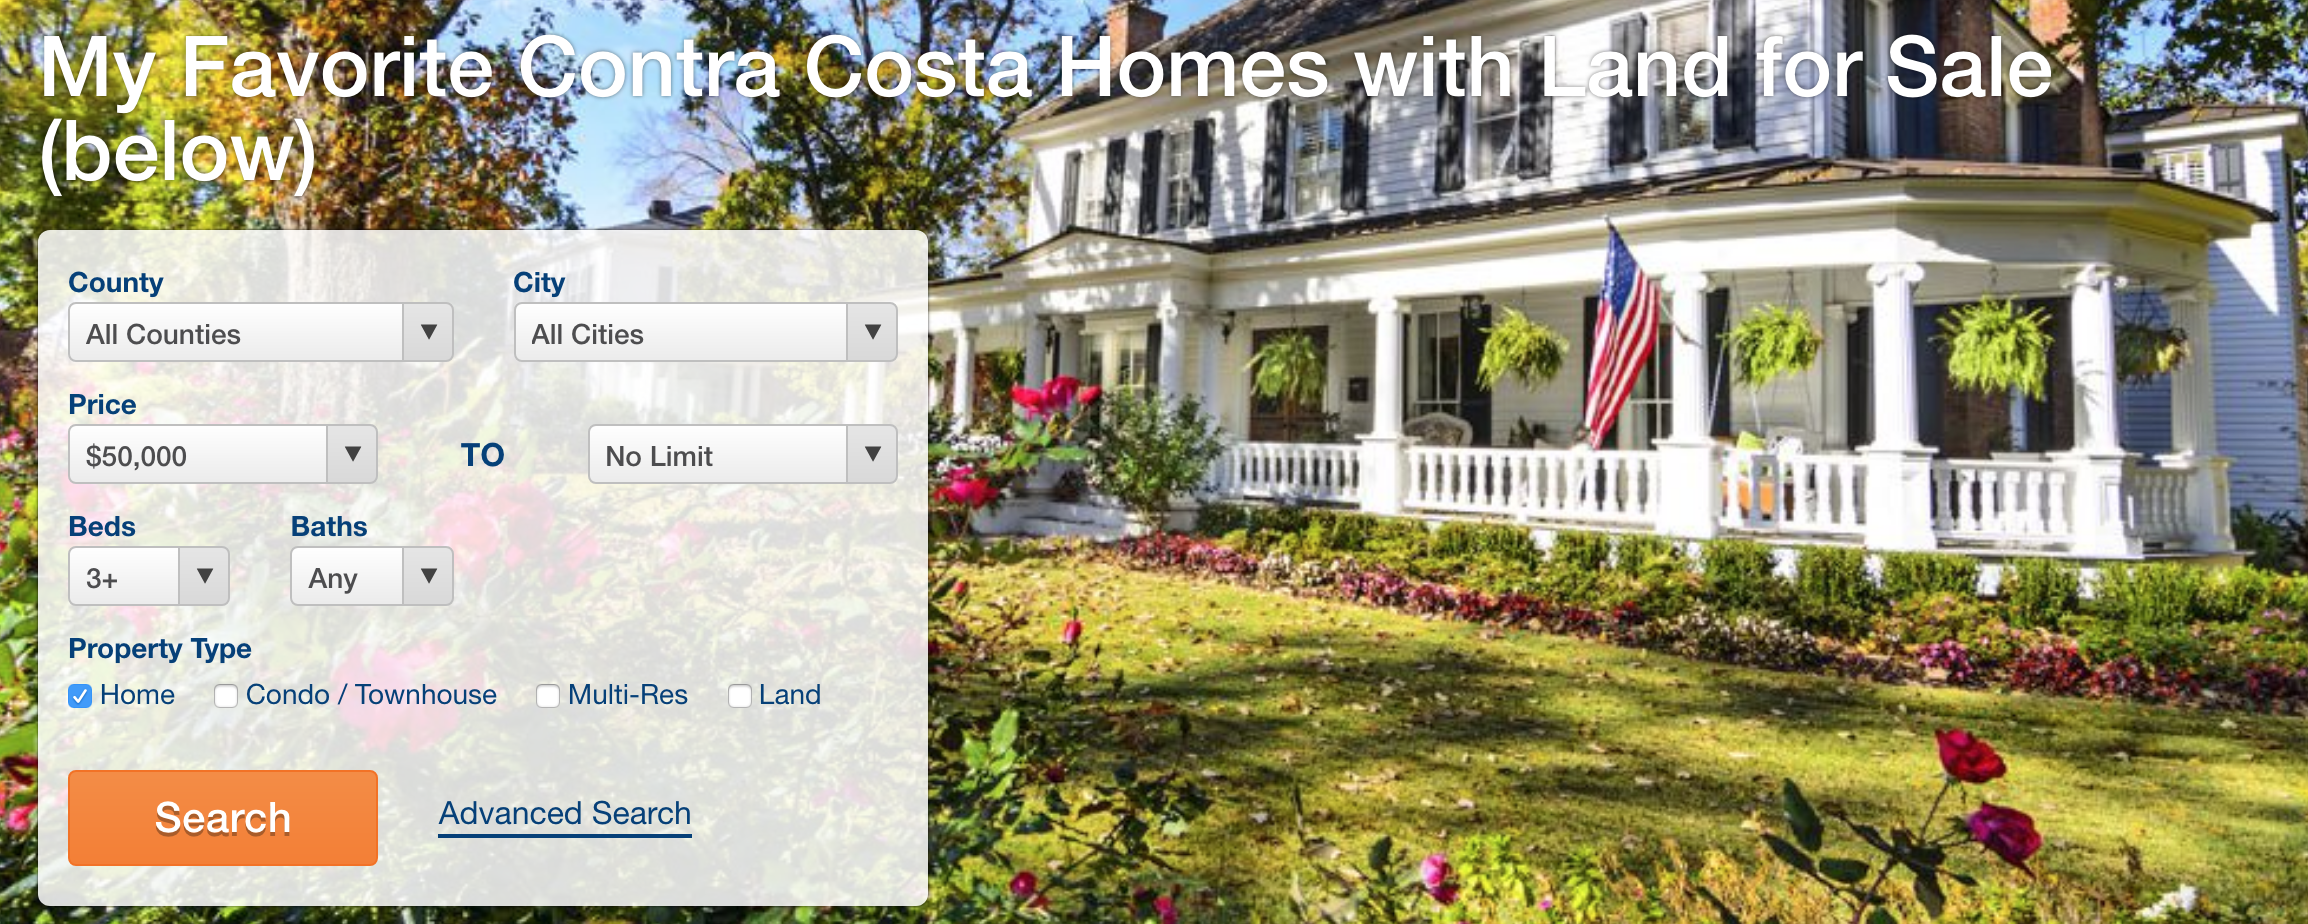 My Favorite Contra Costa Homes with Land for Sale